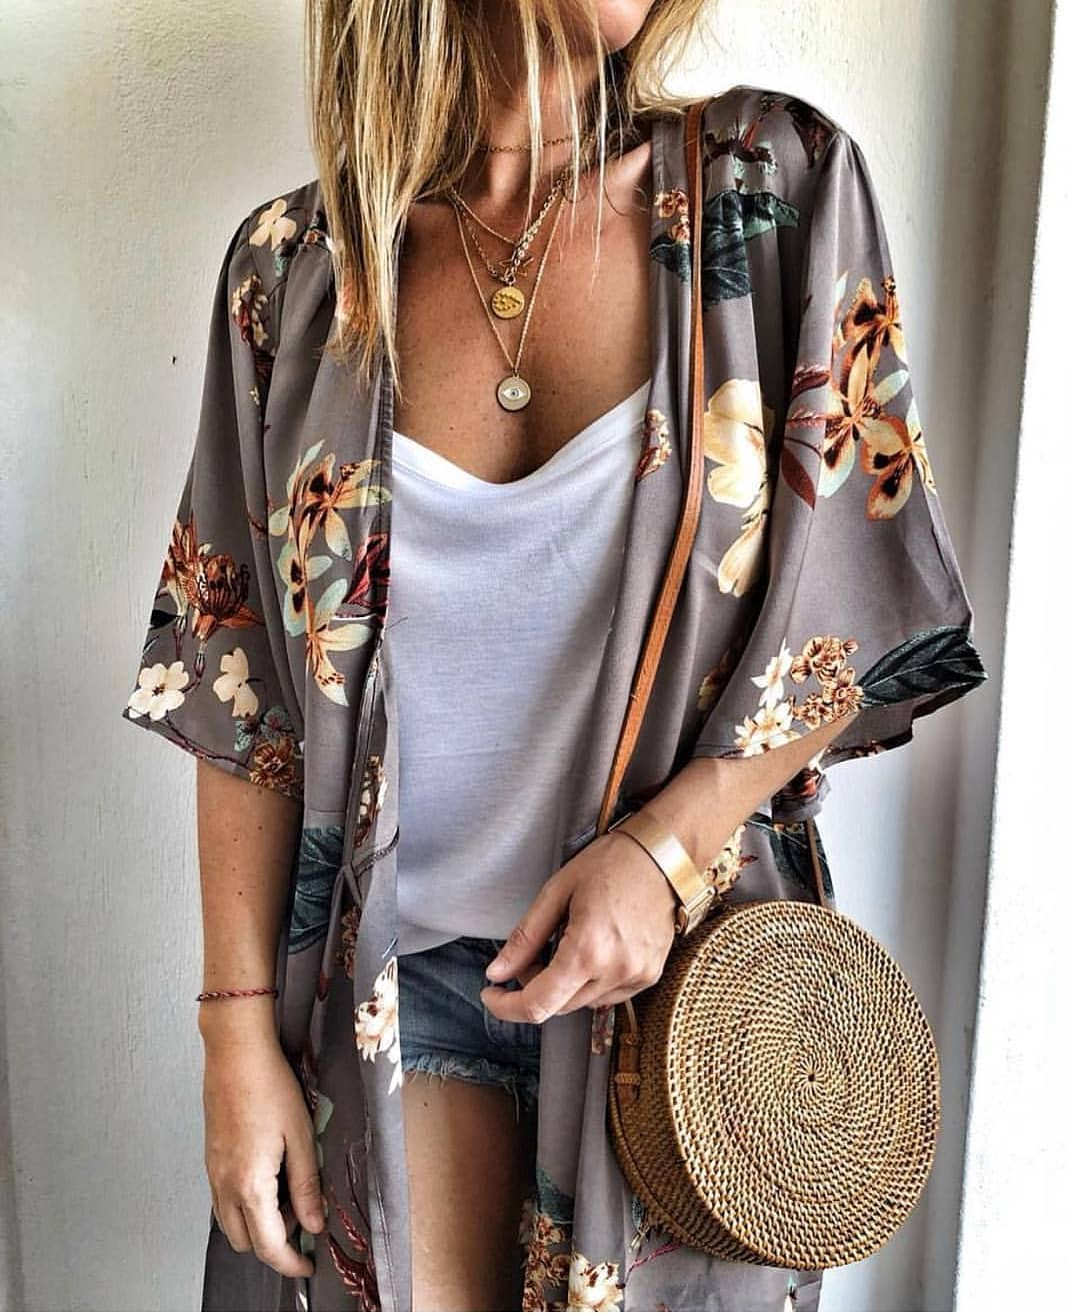 Silken Kimono In Grey Florals For Summer Boho Parties 2019